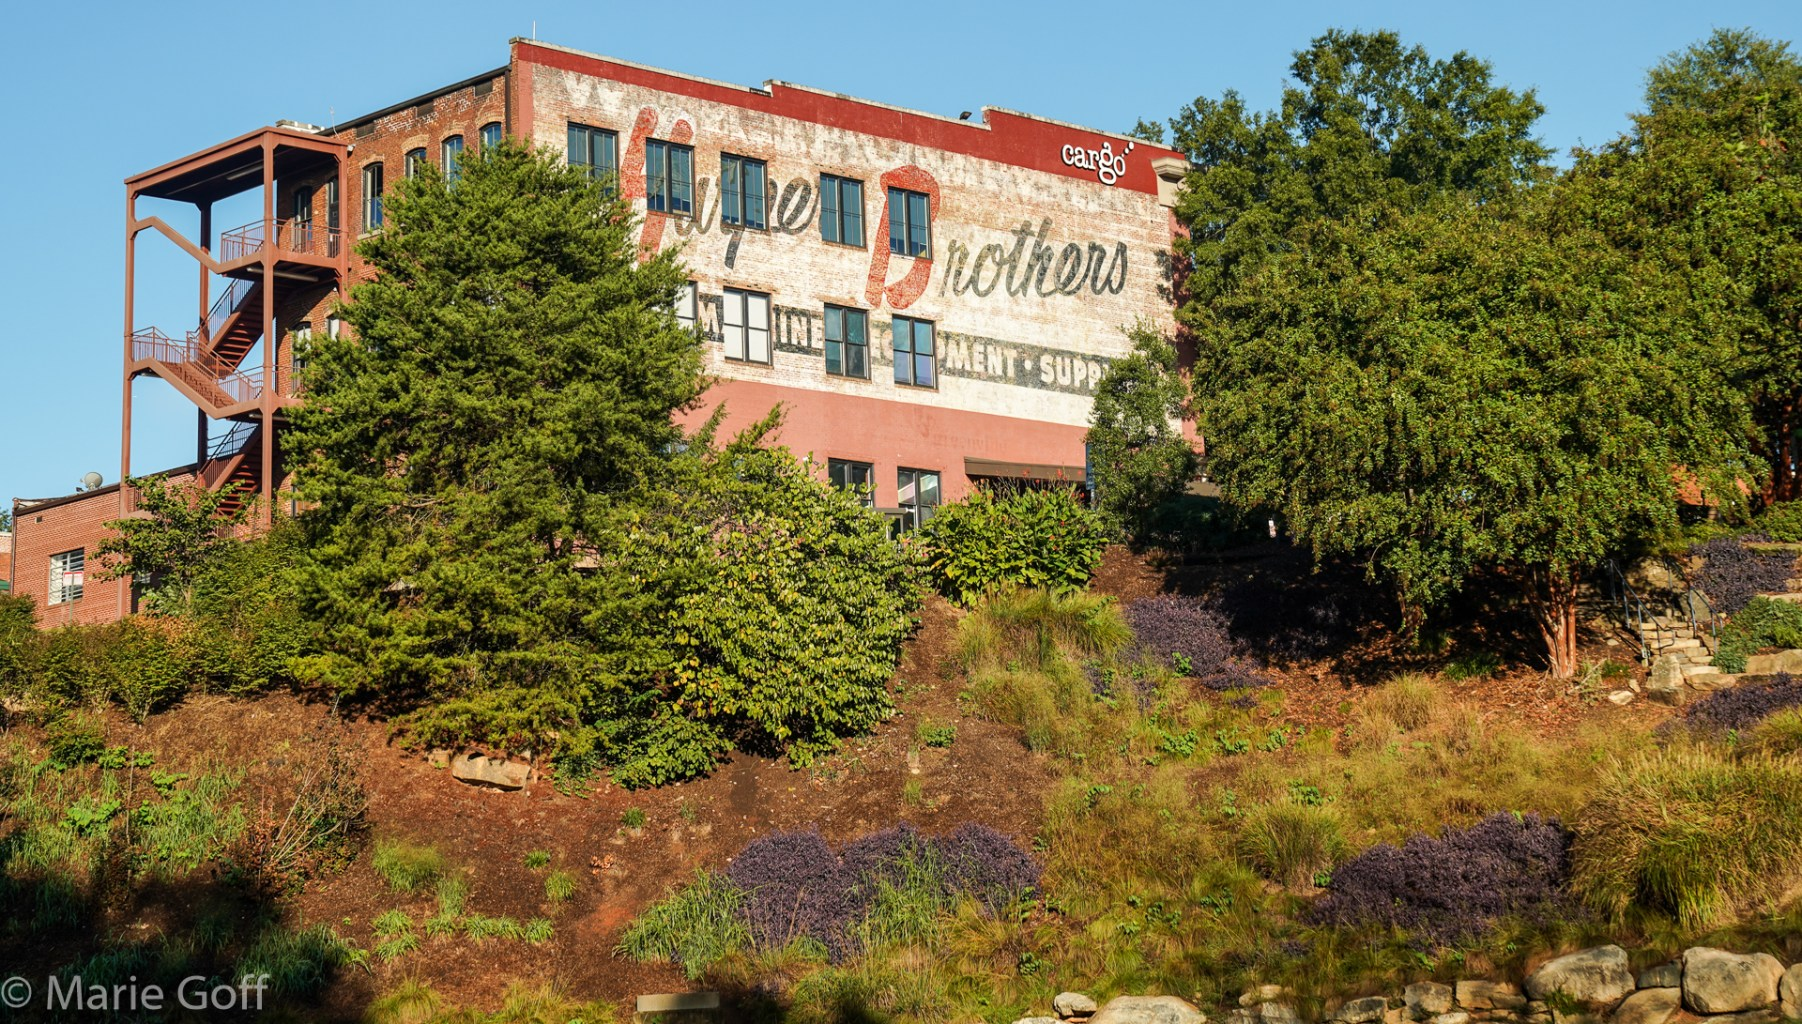 Ghost Sign in Greenville South Carolina